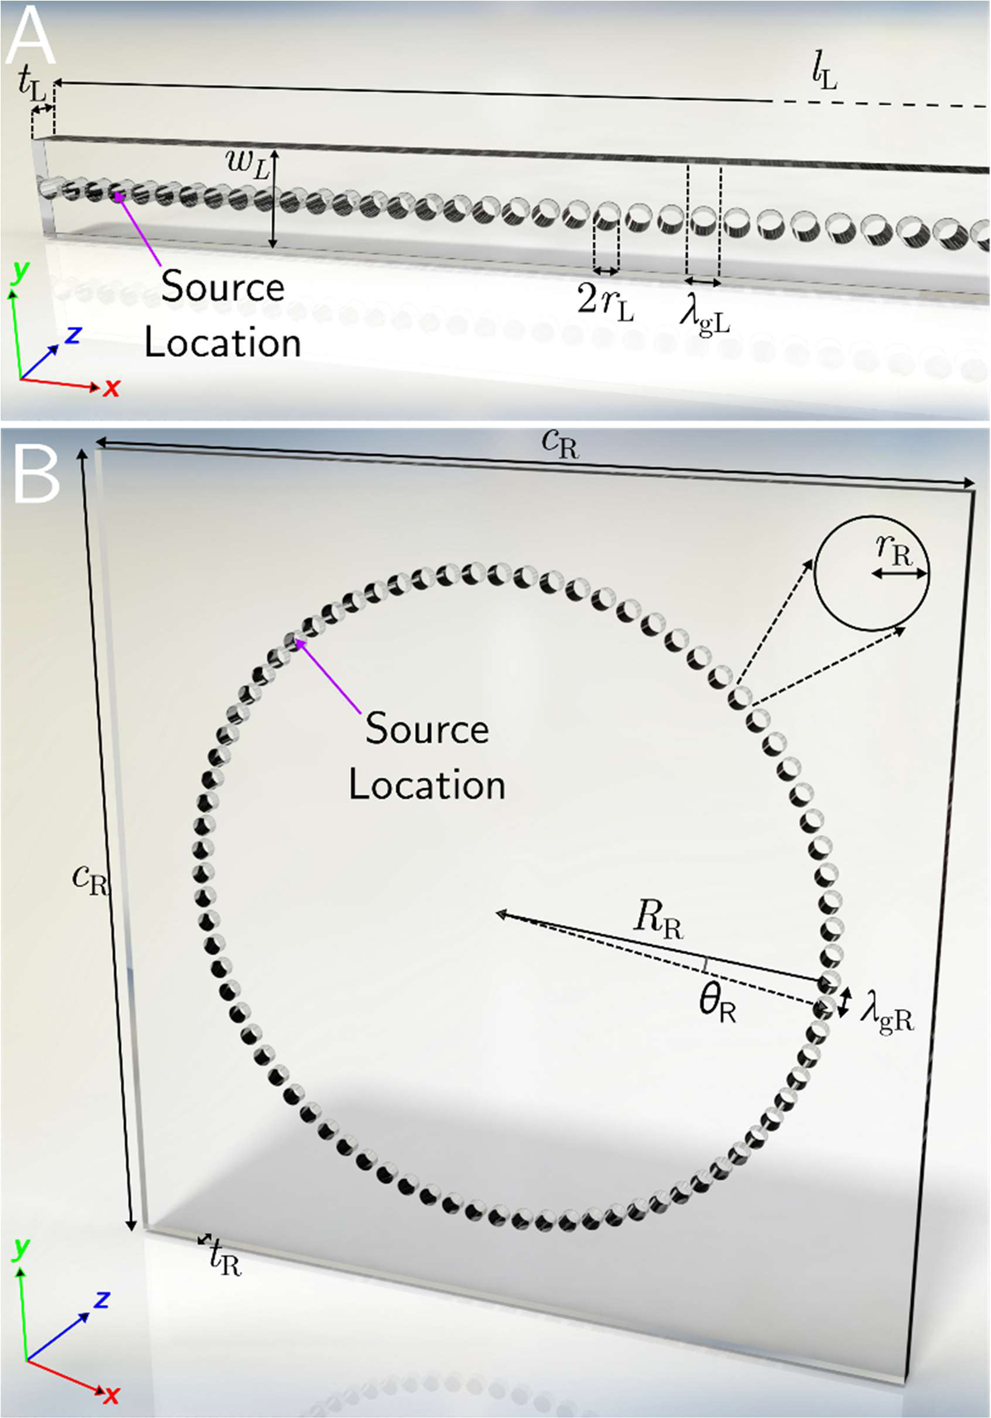 The waveguiding of sound using lines of resonant holes